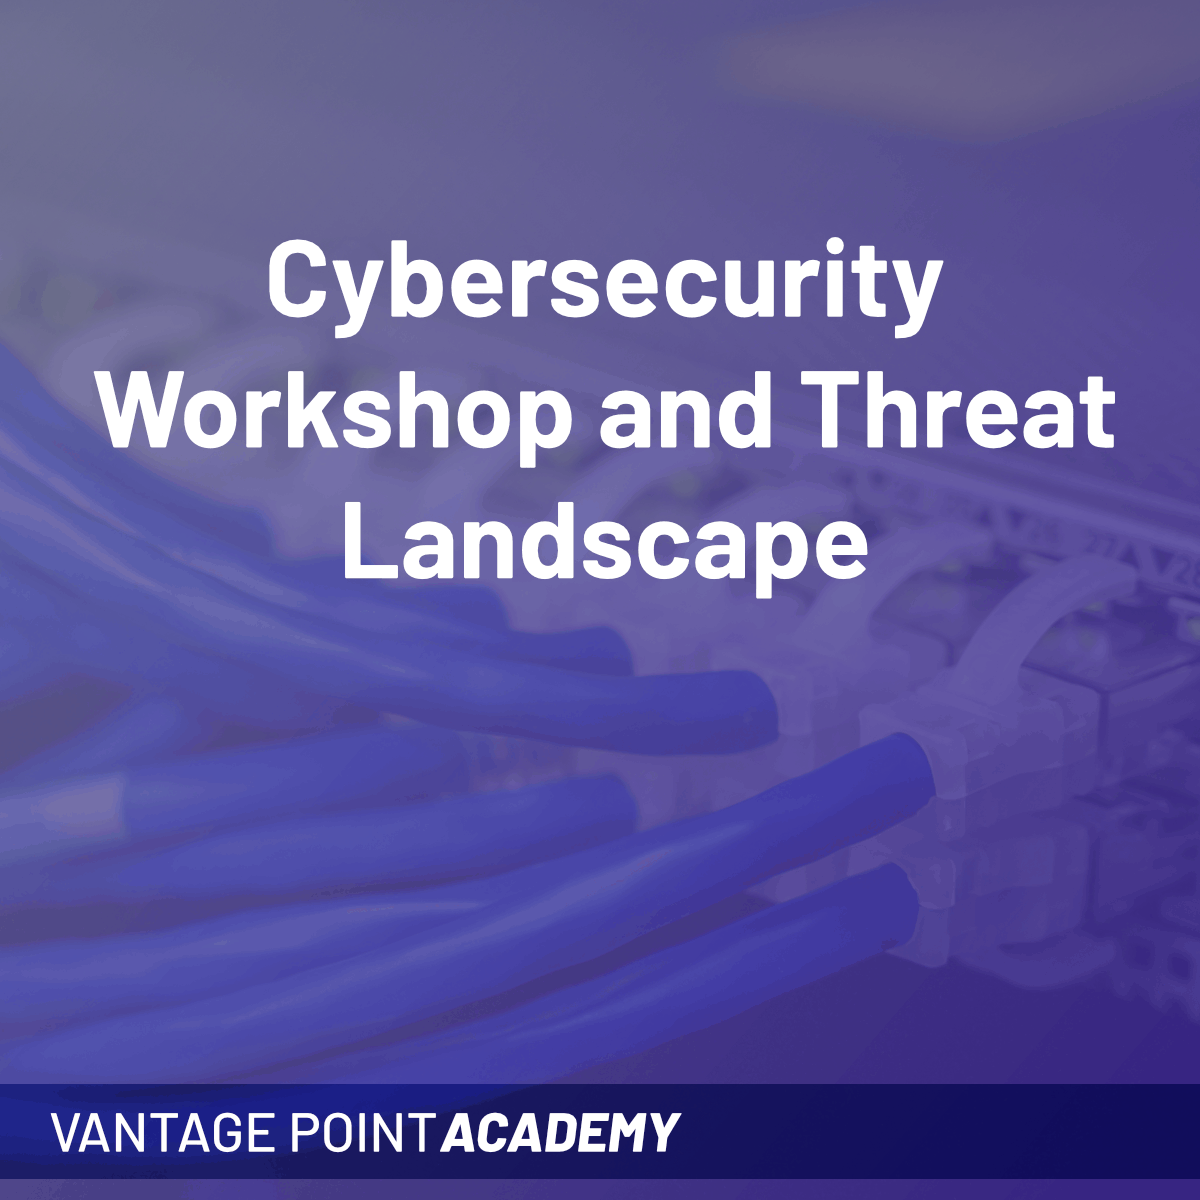 Cybersecurity Workshop and Threat Landscape (Q1 2021)